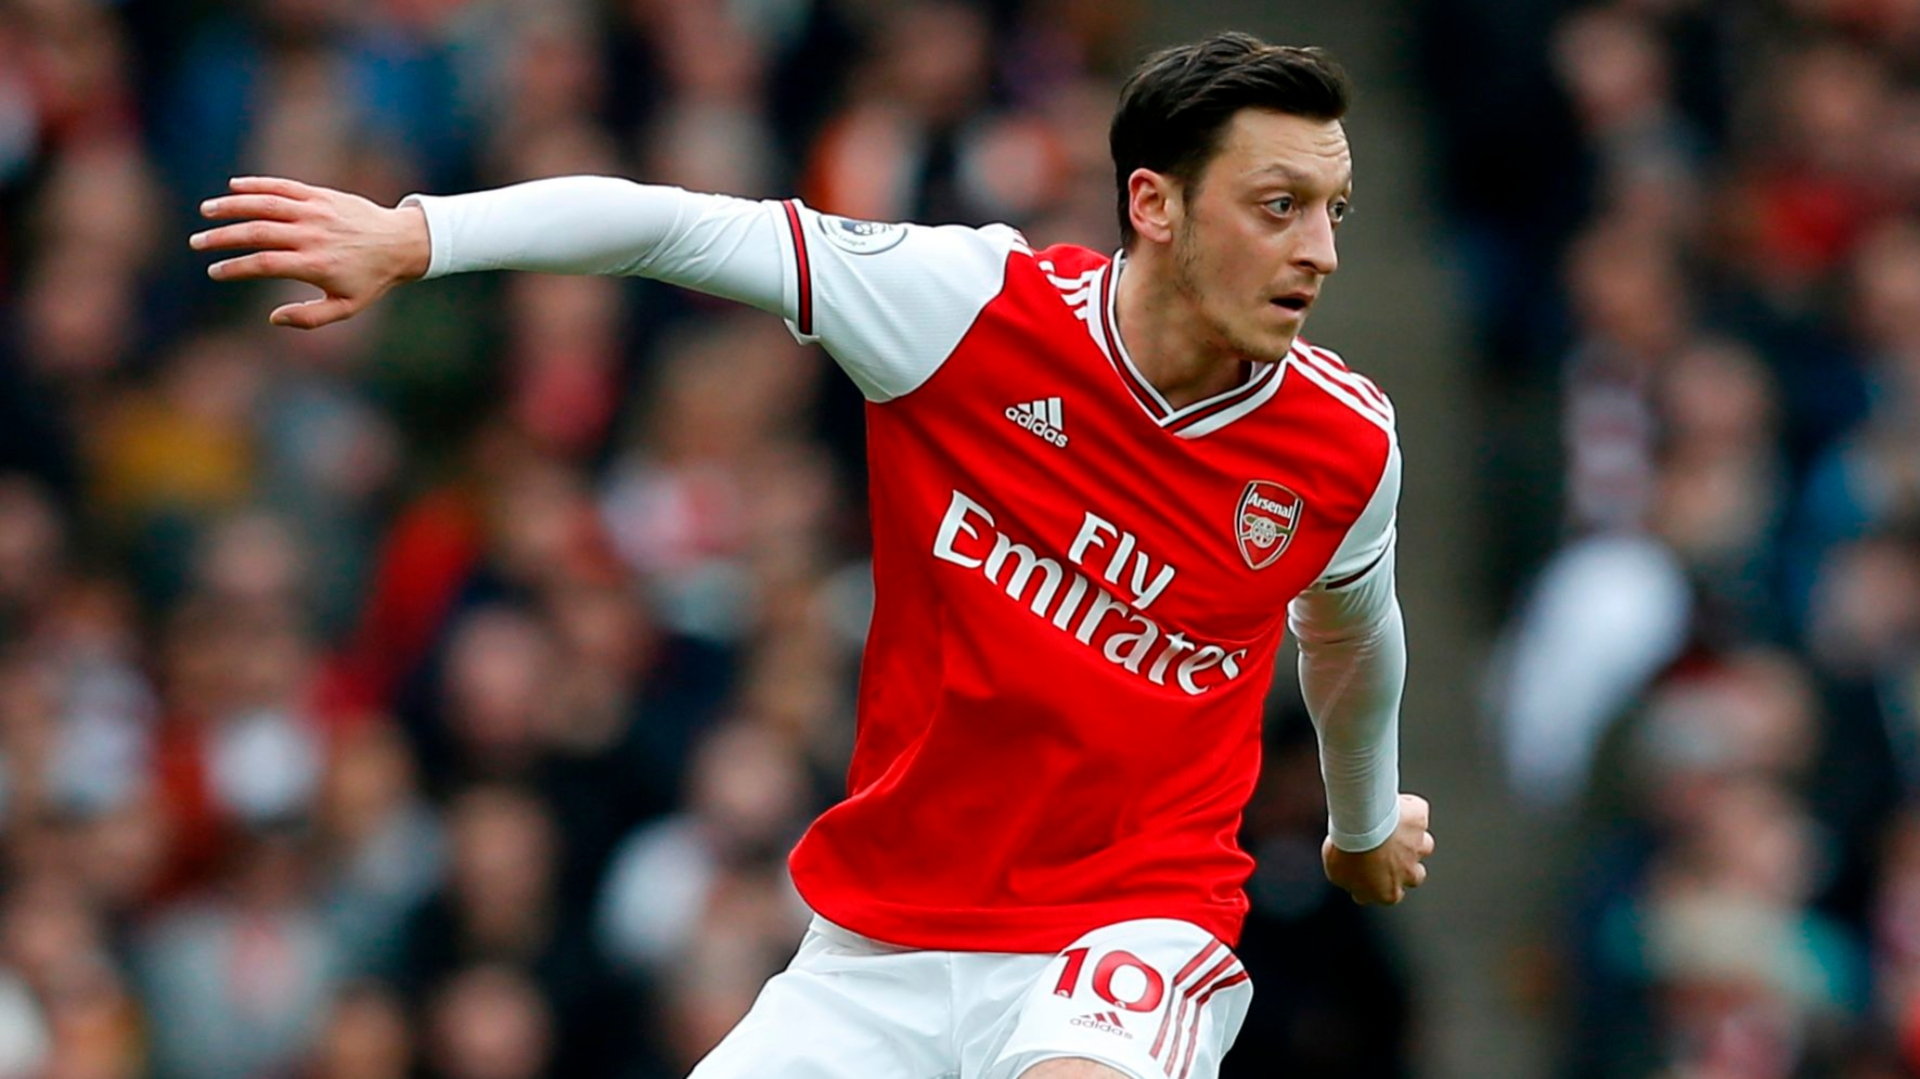 'Ozil doesn't have the best discipline' - Wenger details how to get the best out of Arsenal outcast